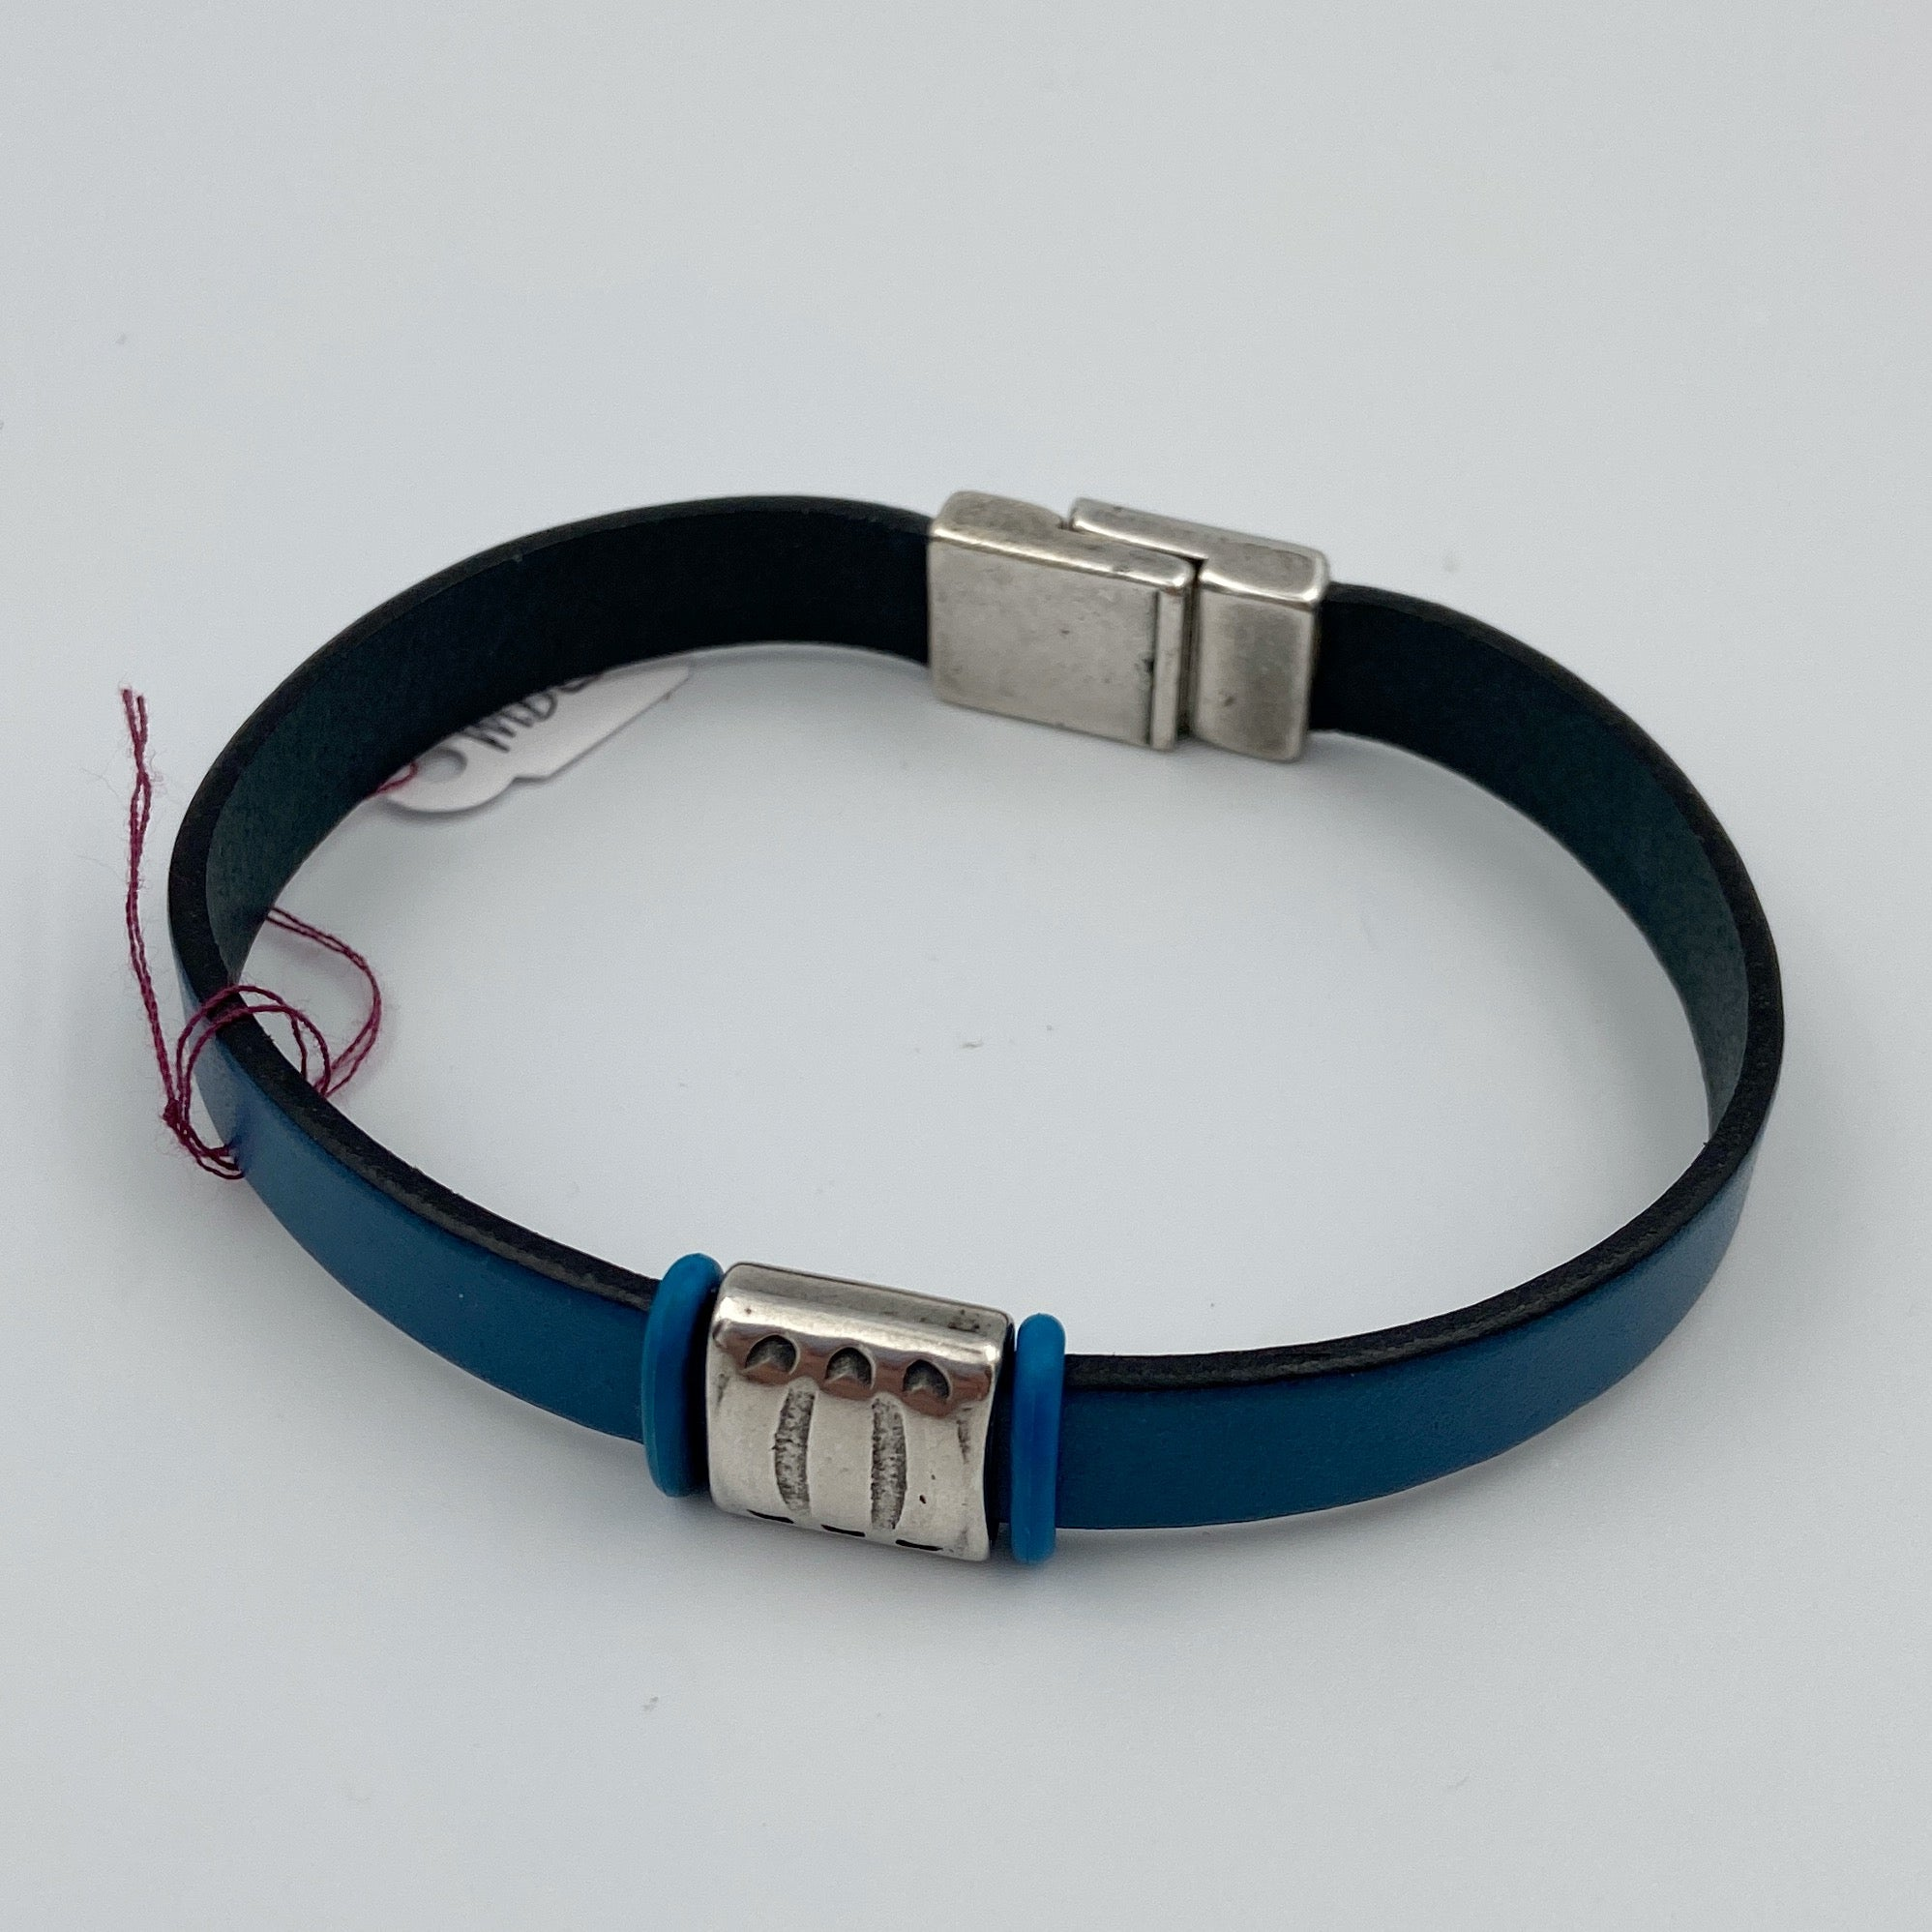 Plain Flat Leather Bracelet with Stainless Steel Clasp